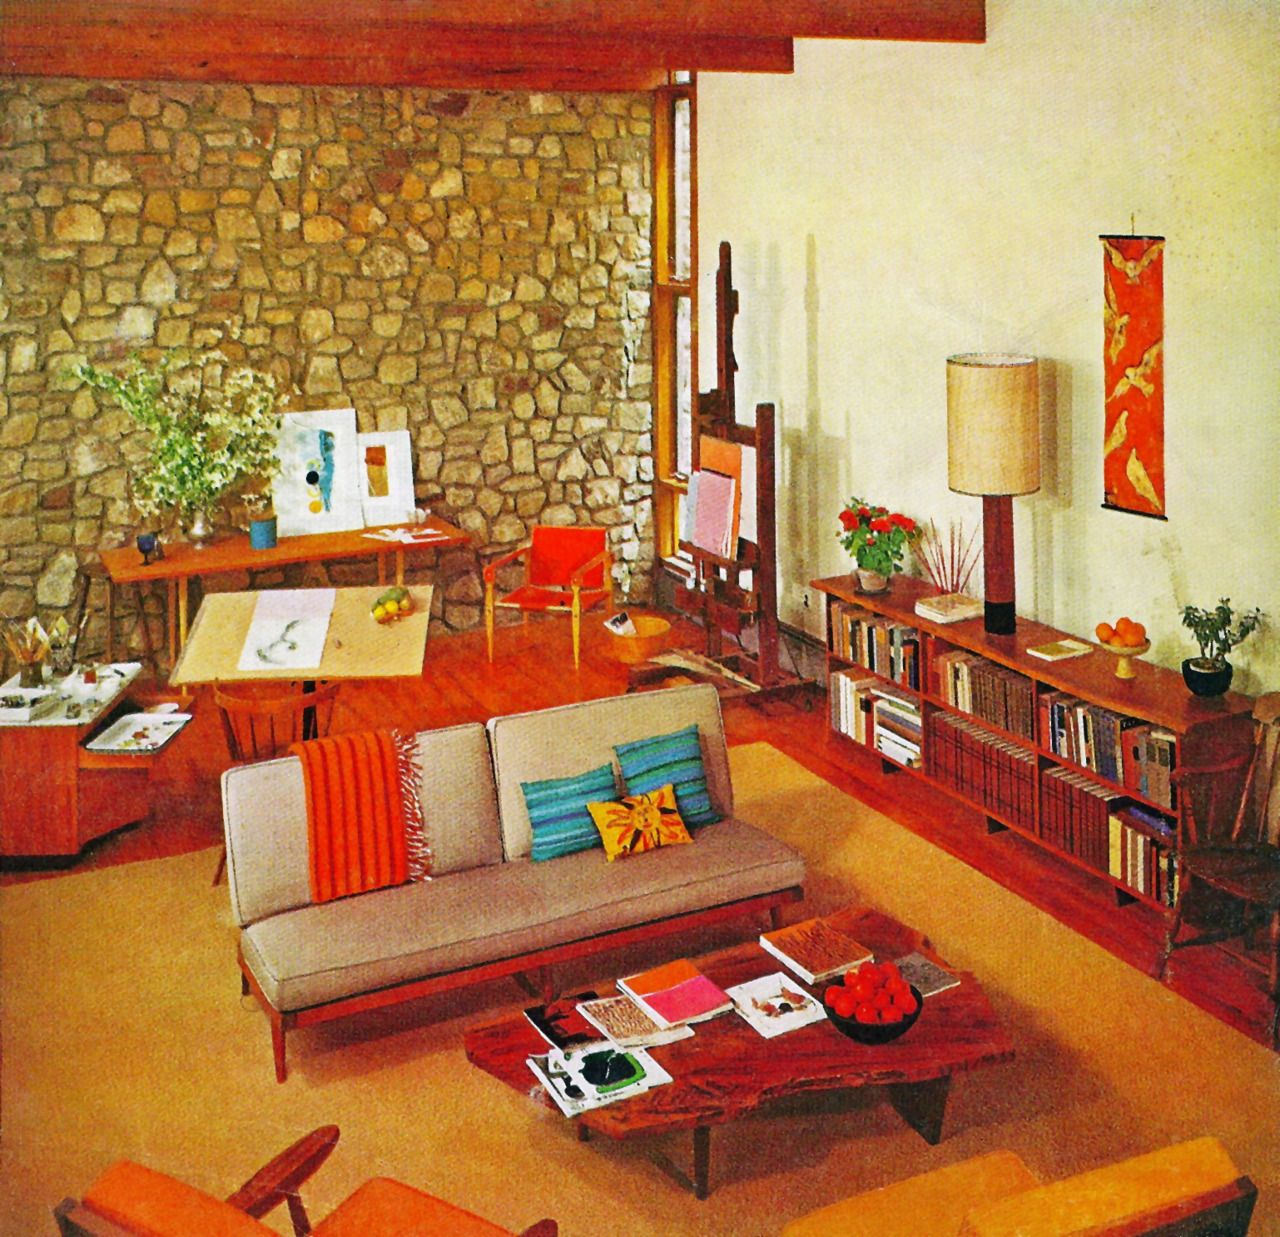 60s Style Couches Image Of 70s Decorating Ideas Wouldn 39t Say No Retro